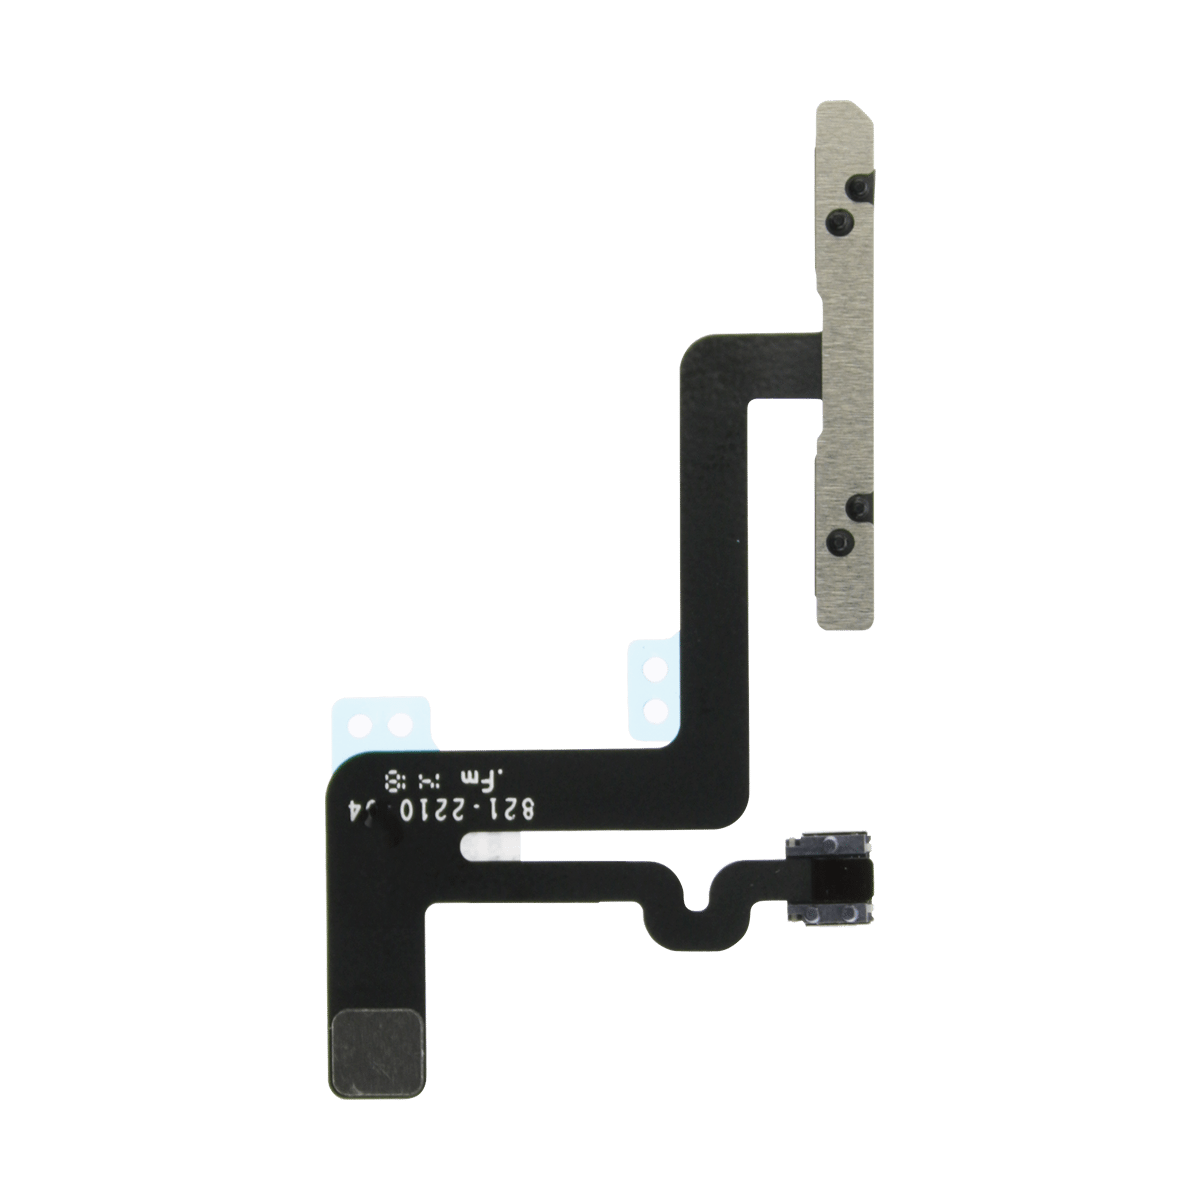 iPhone 6 Plus Volume Buttons Flex Cable Replacement